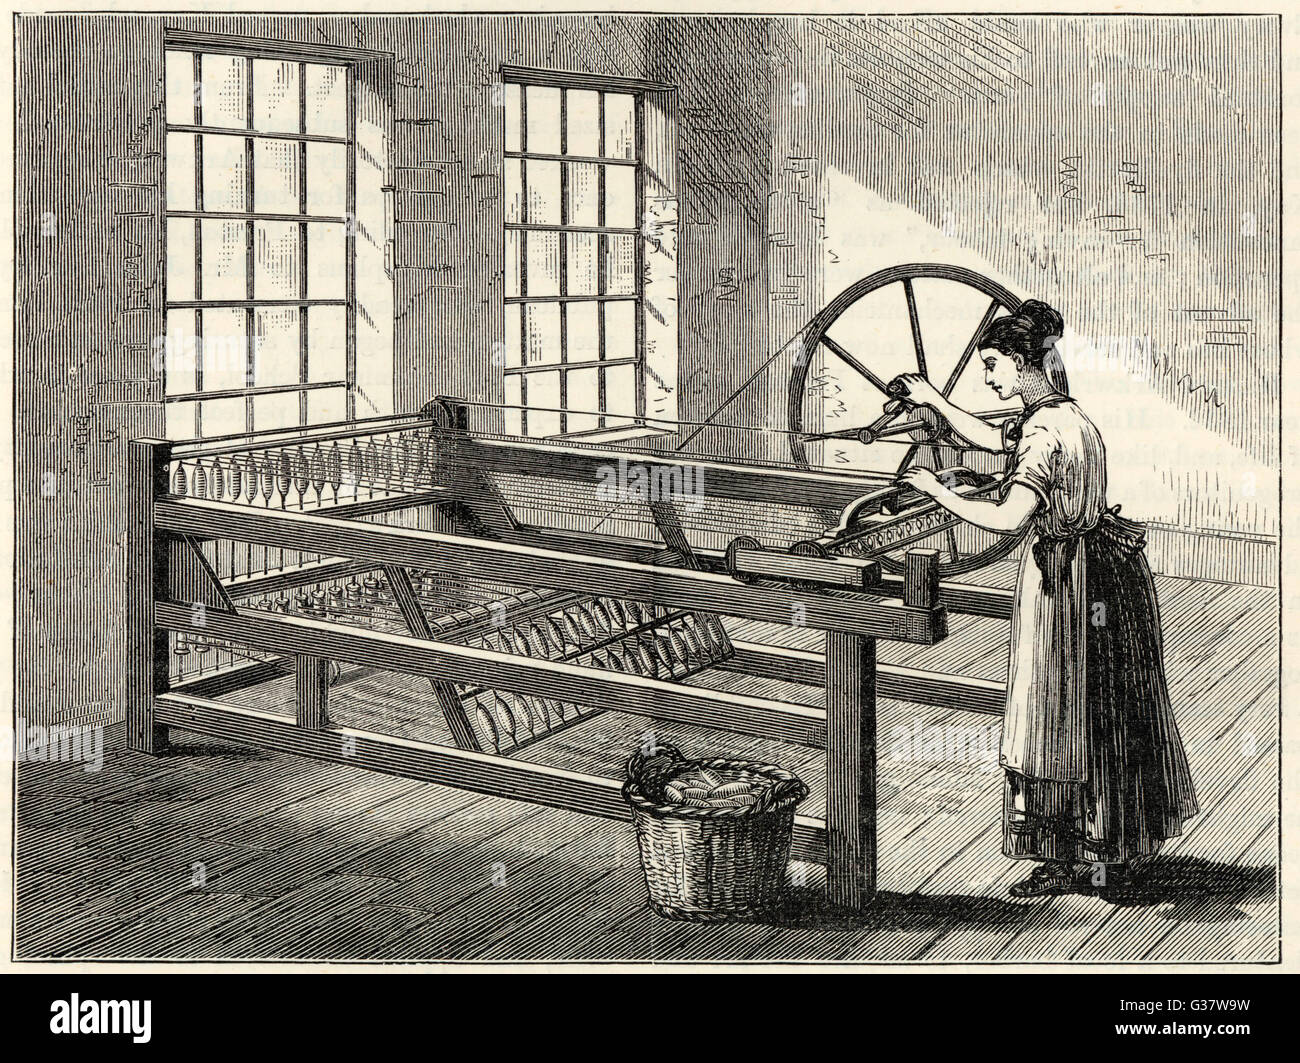 HARGREAVES' SPINNING JENNY James Hargreaves in 1767 invented this jenny  which could spin 8 bobbins at once ; later this was increased to 16 Date:  1767